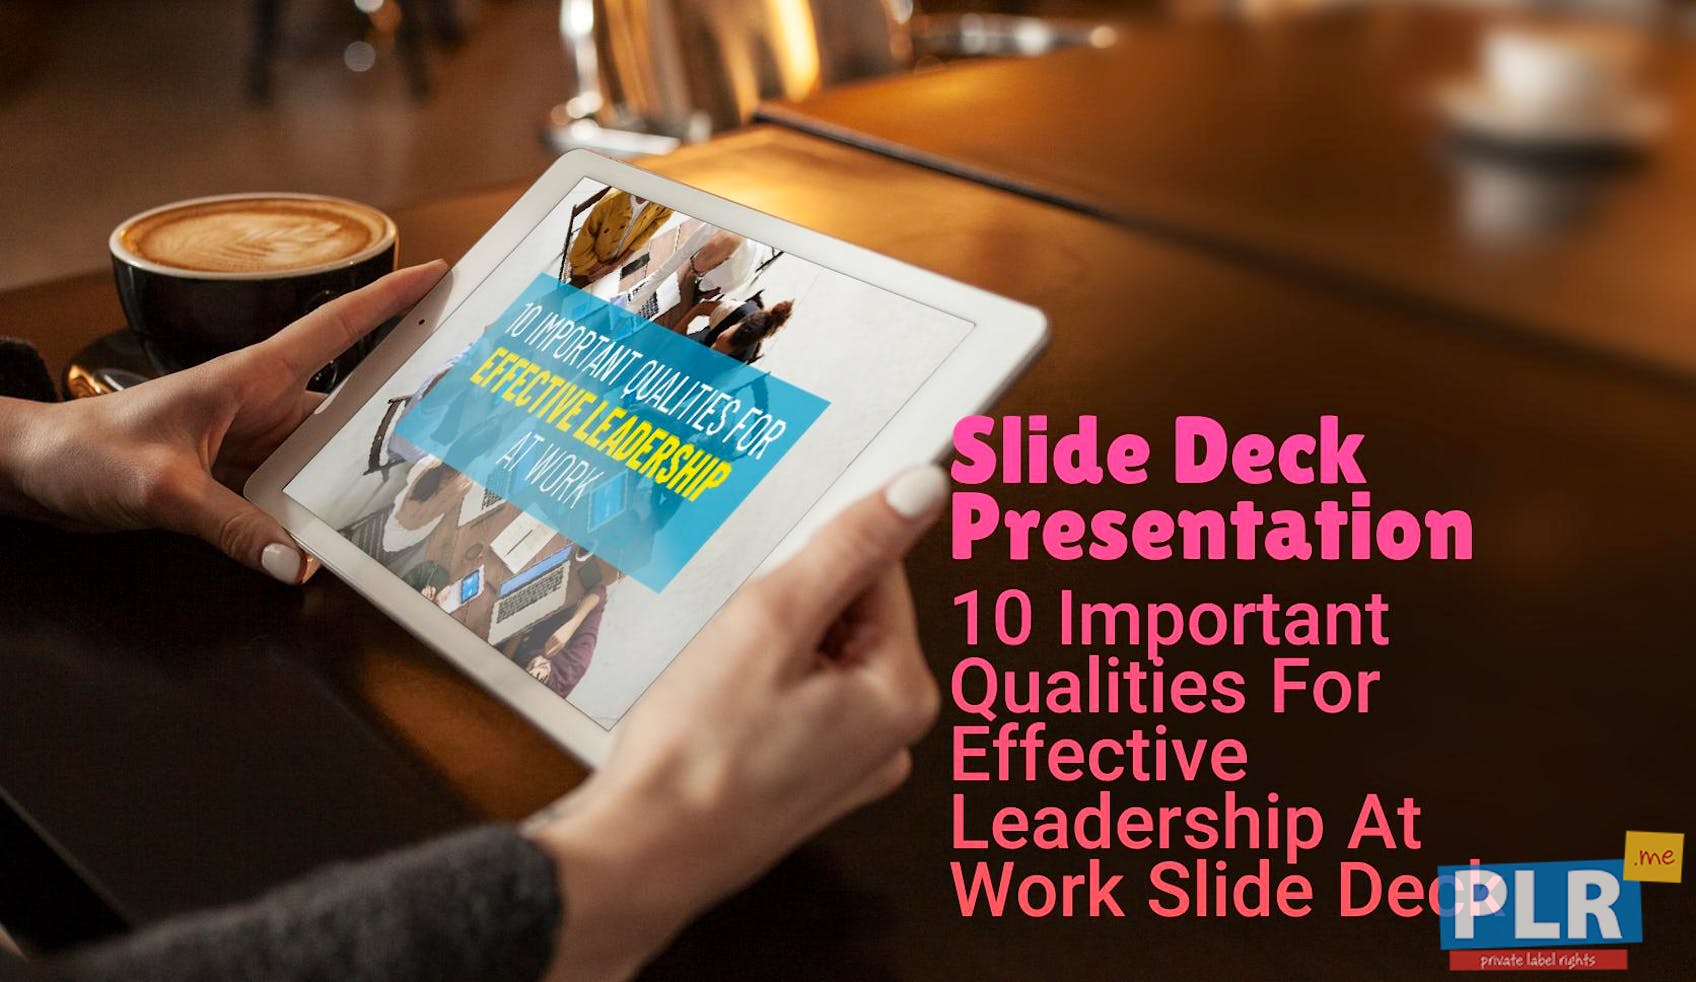 10 Important Qualities For Effective Leadership At Work Slide Deck